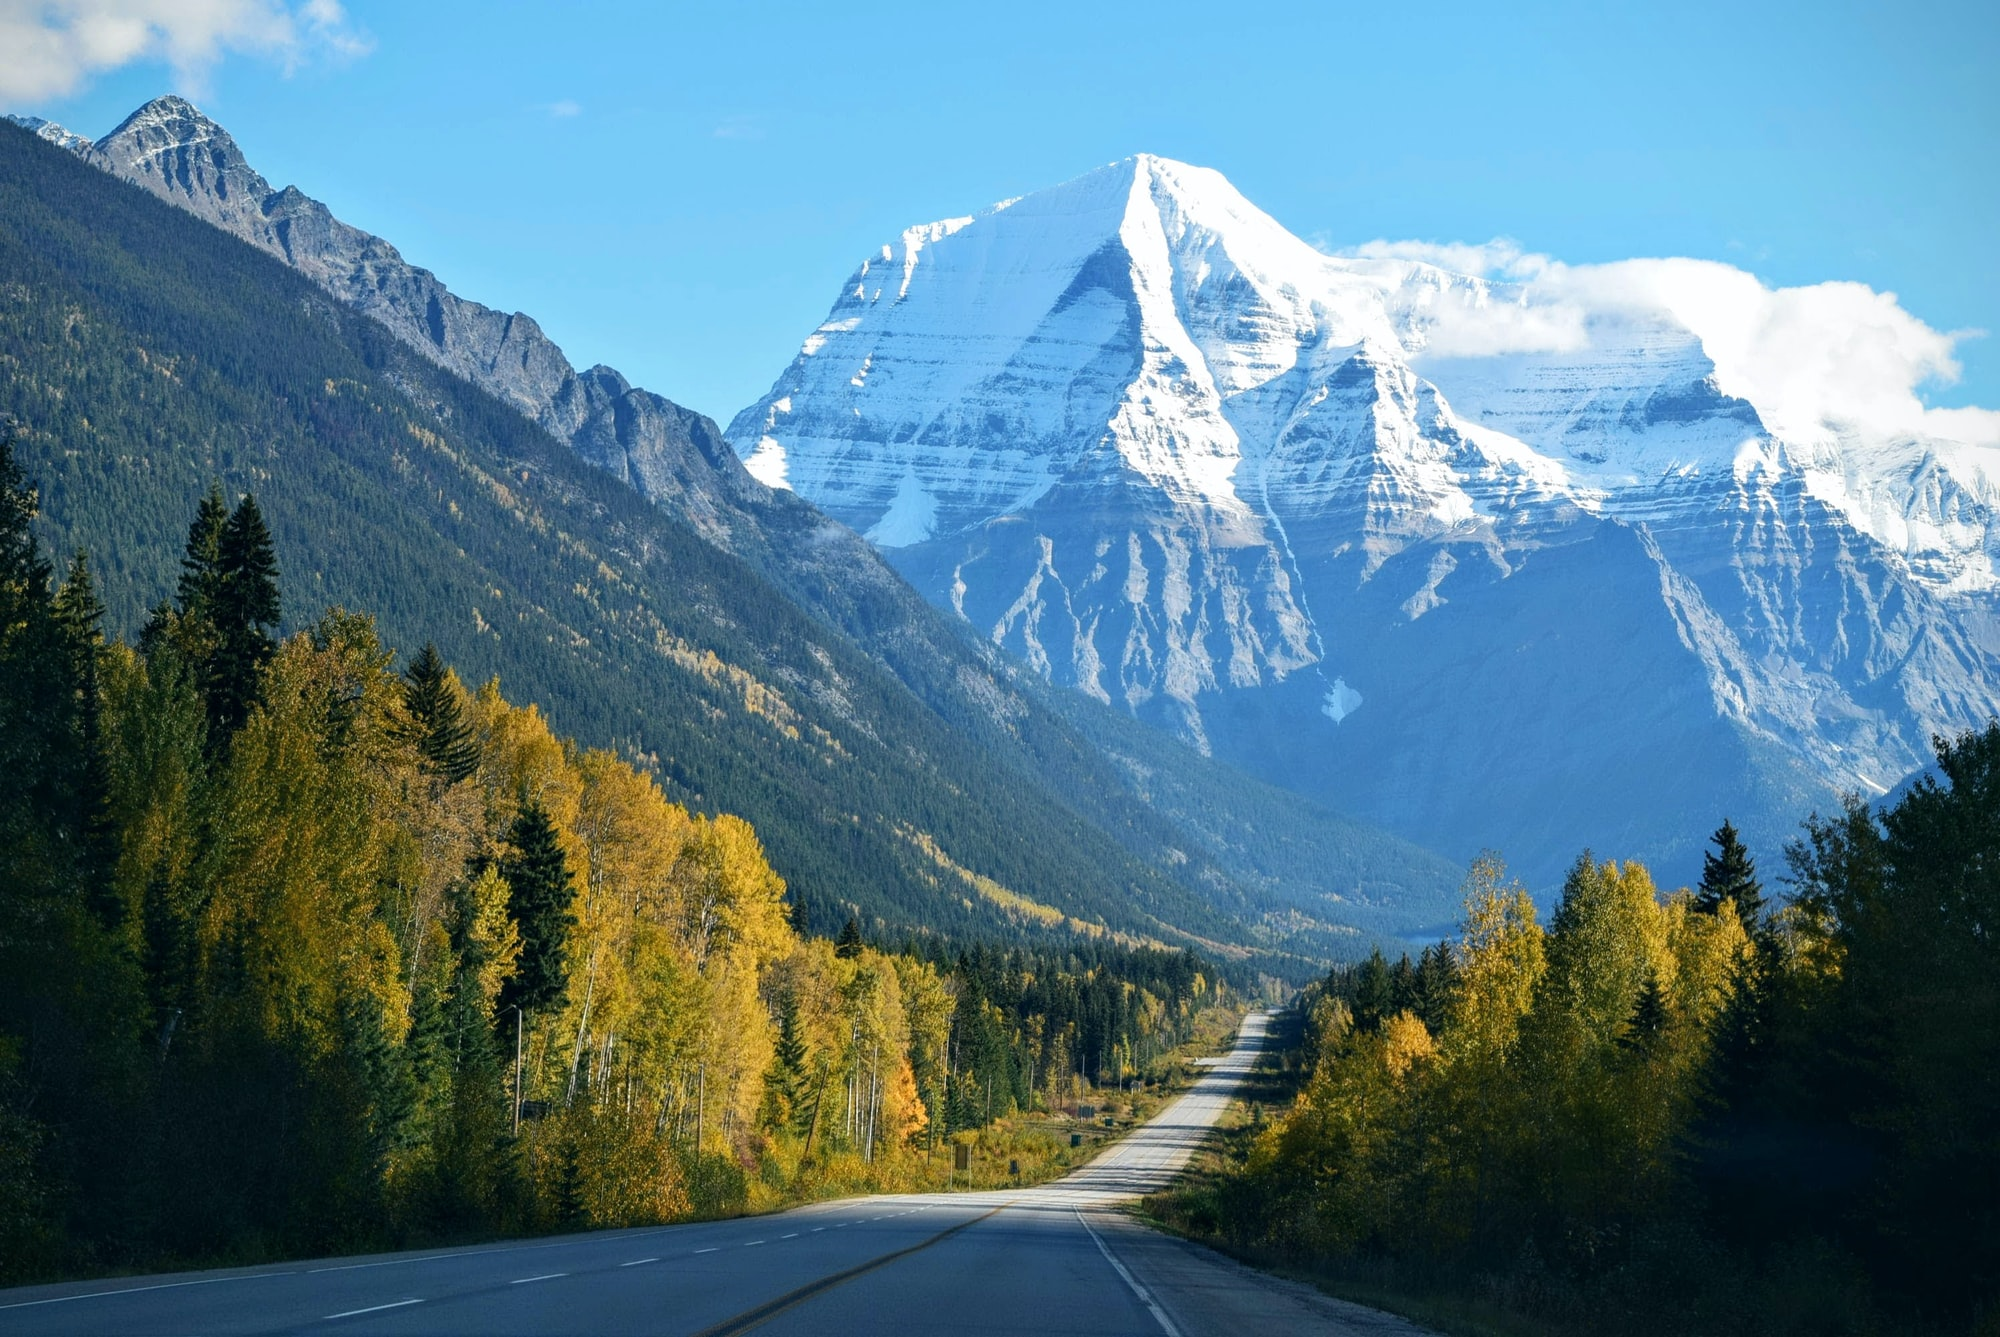 Snow covered mountains in Mount Robson